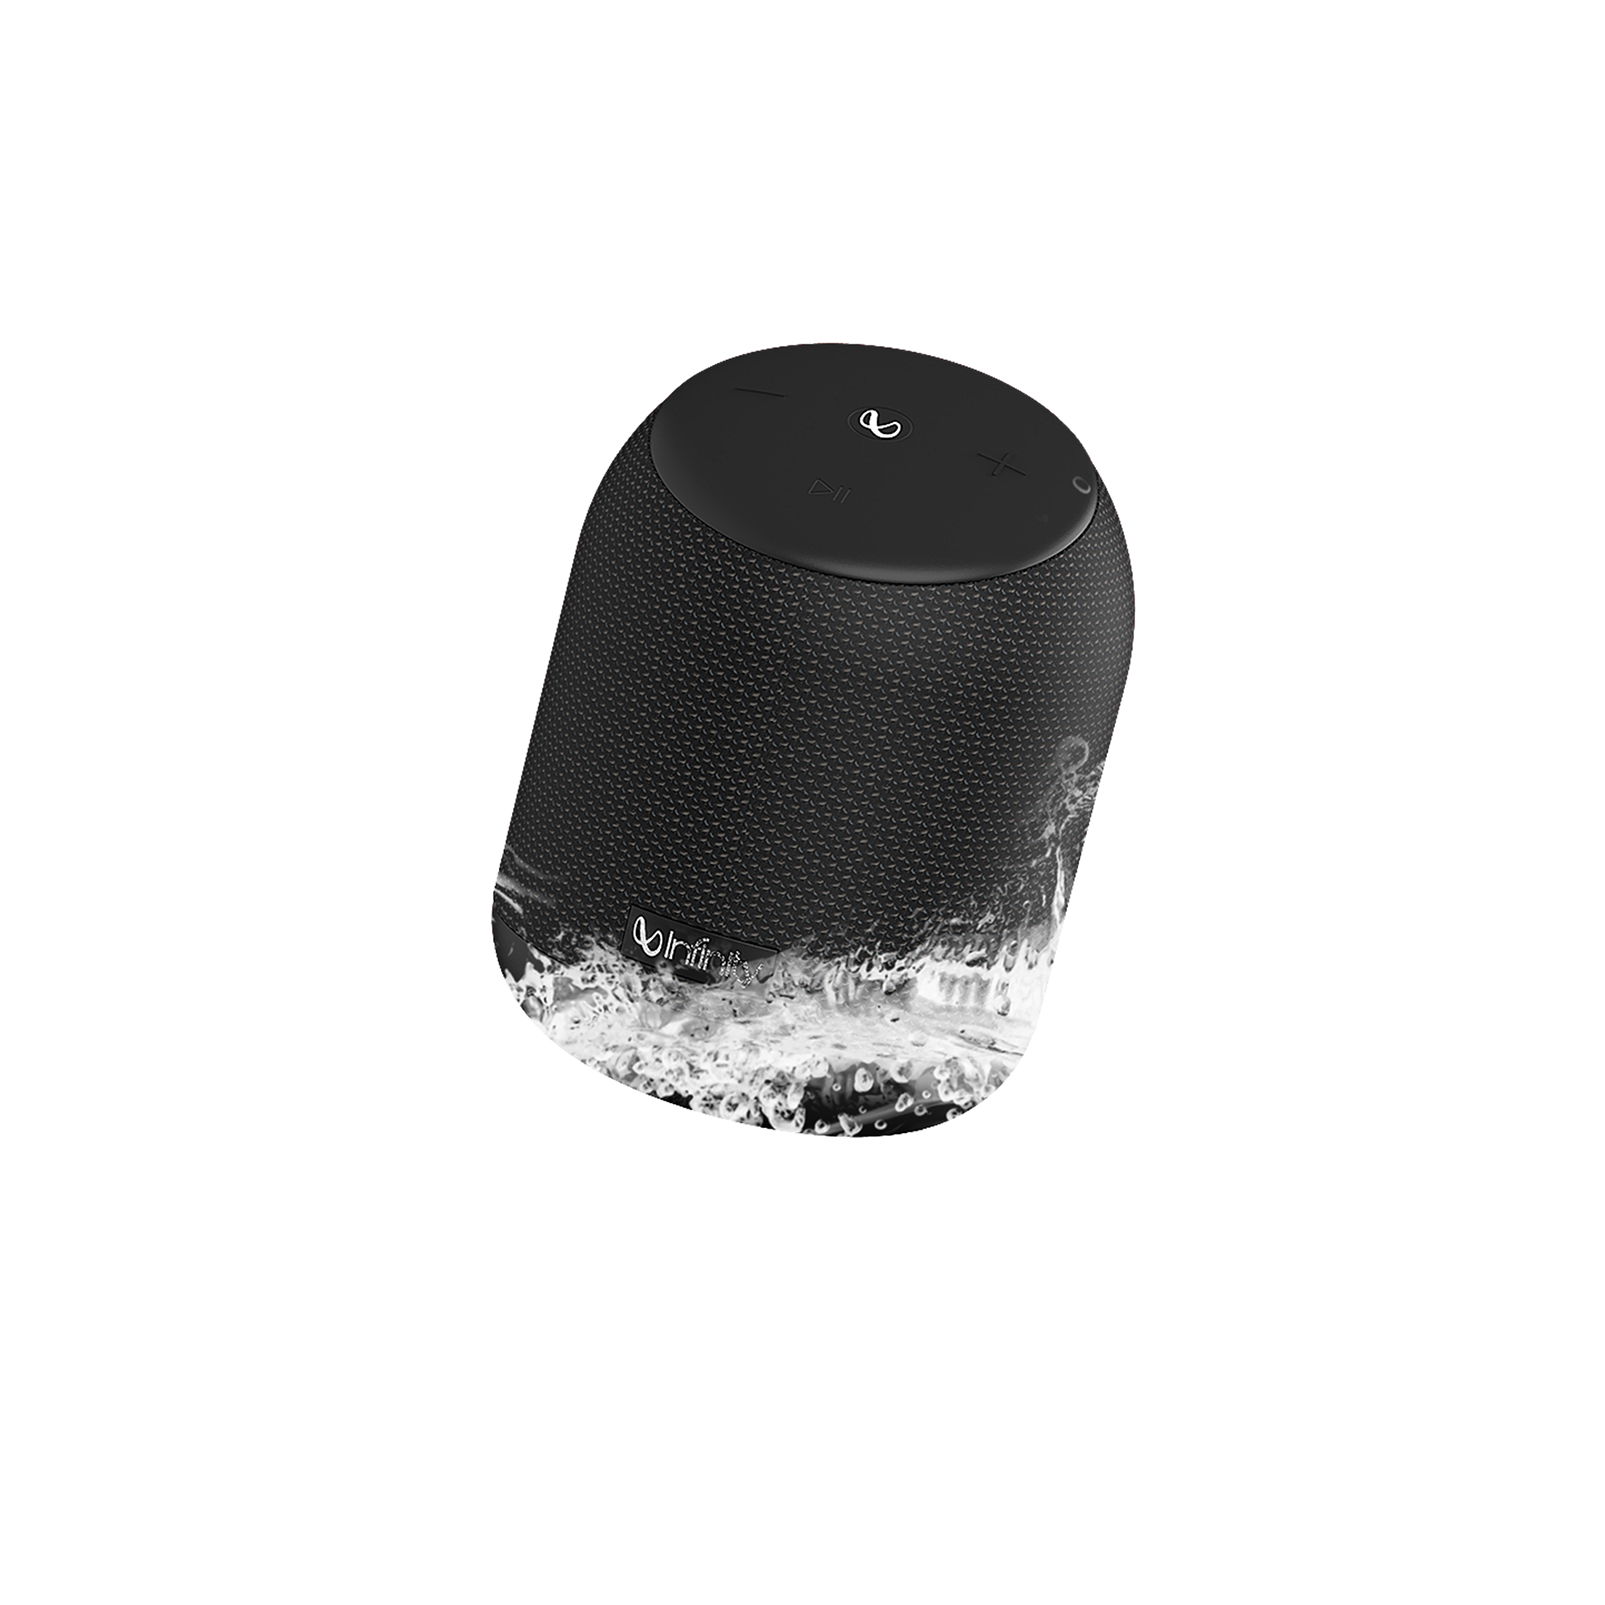 INFINITY FUZE 200 - Black - Portable Wireless Speakers - Hero